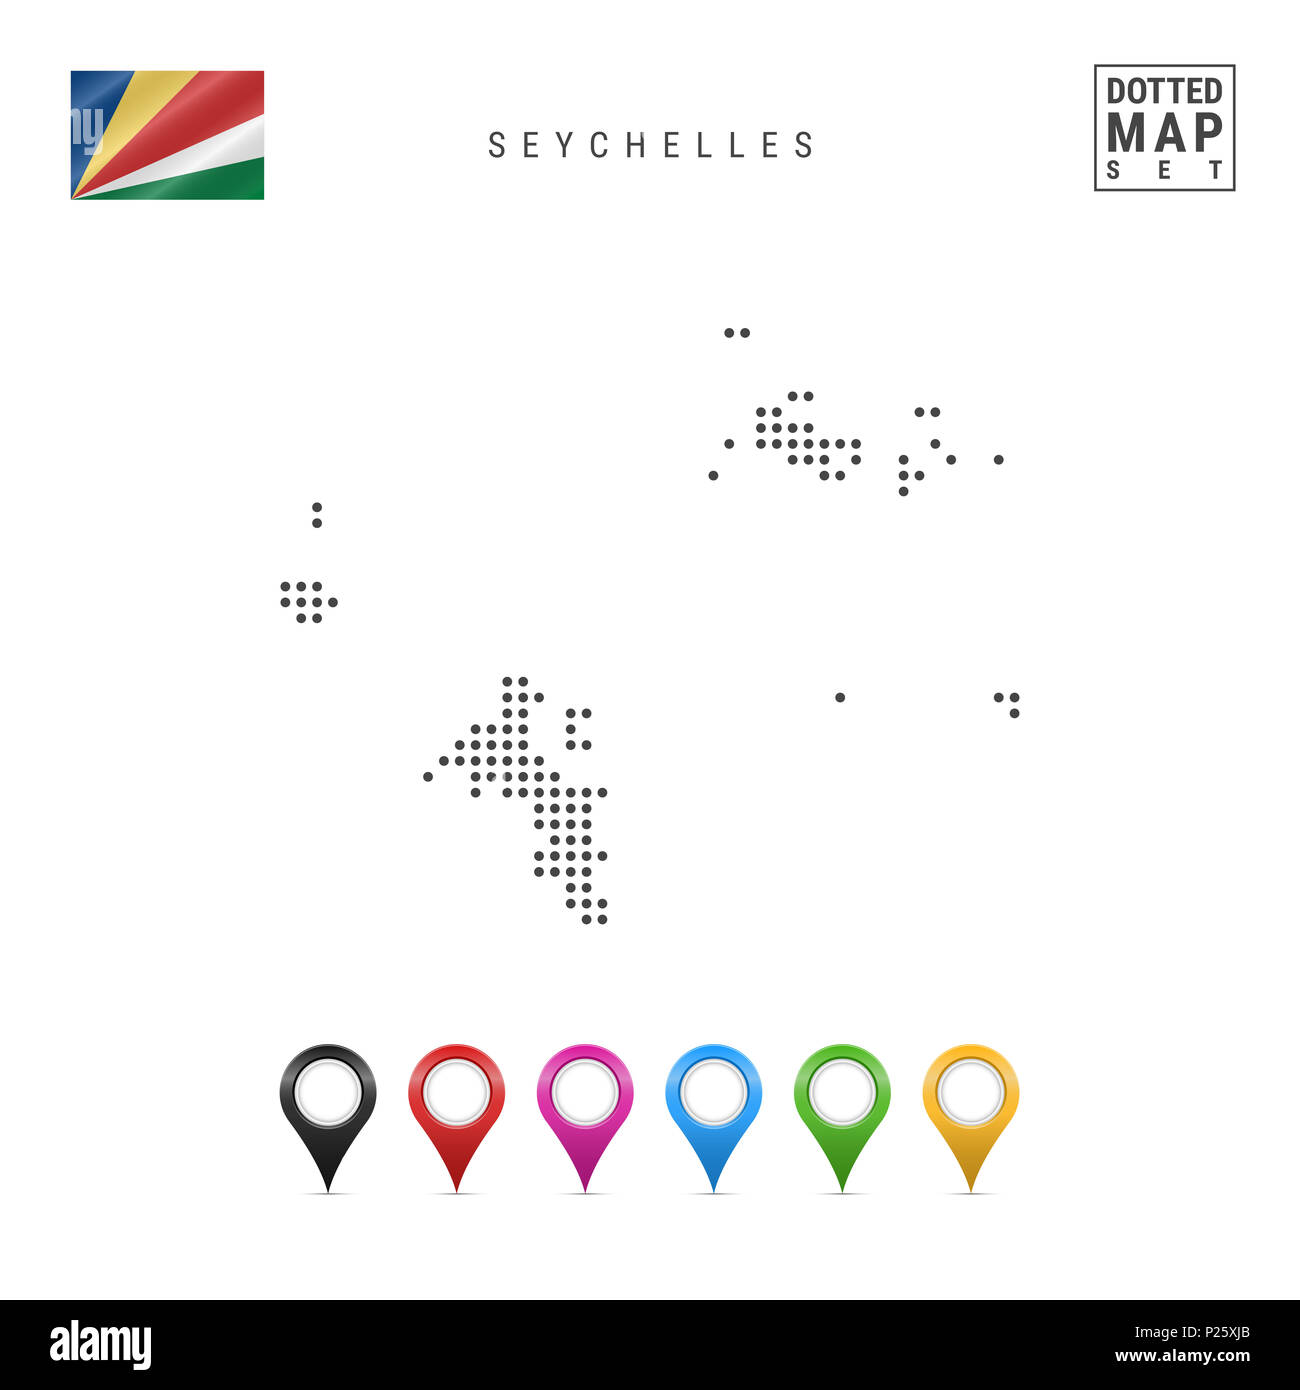 Dotted Map of Seychelles. Simple Silhouette of Seychelles. The National Flag of Seychelles. Set of Multicolored Map Markers. Illustration Isolated on  - Stock Image